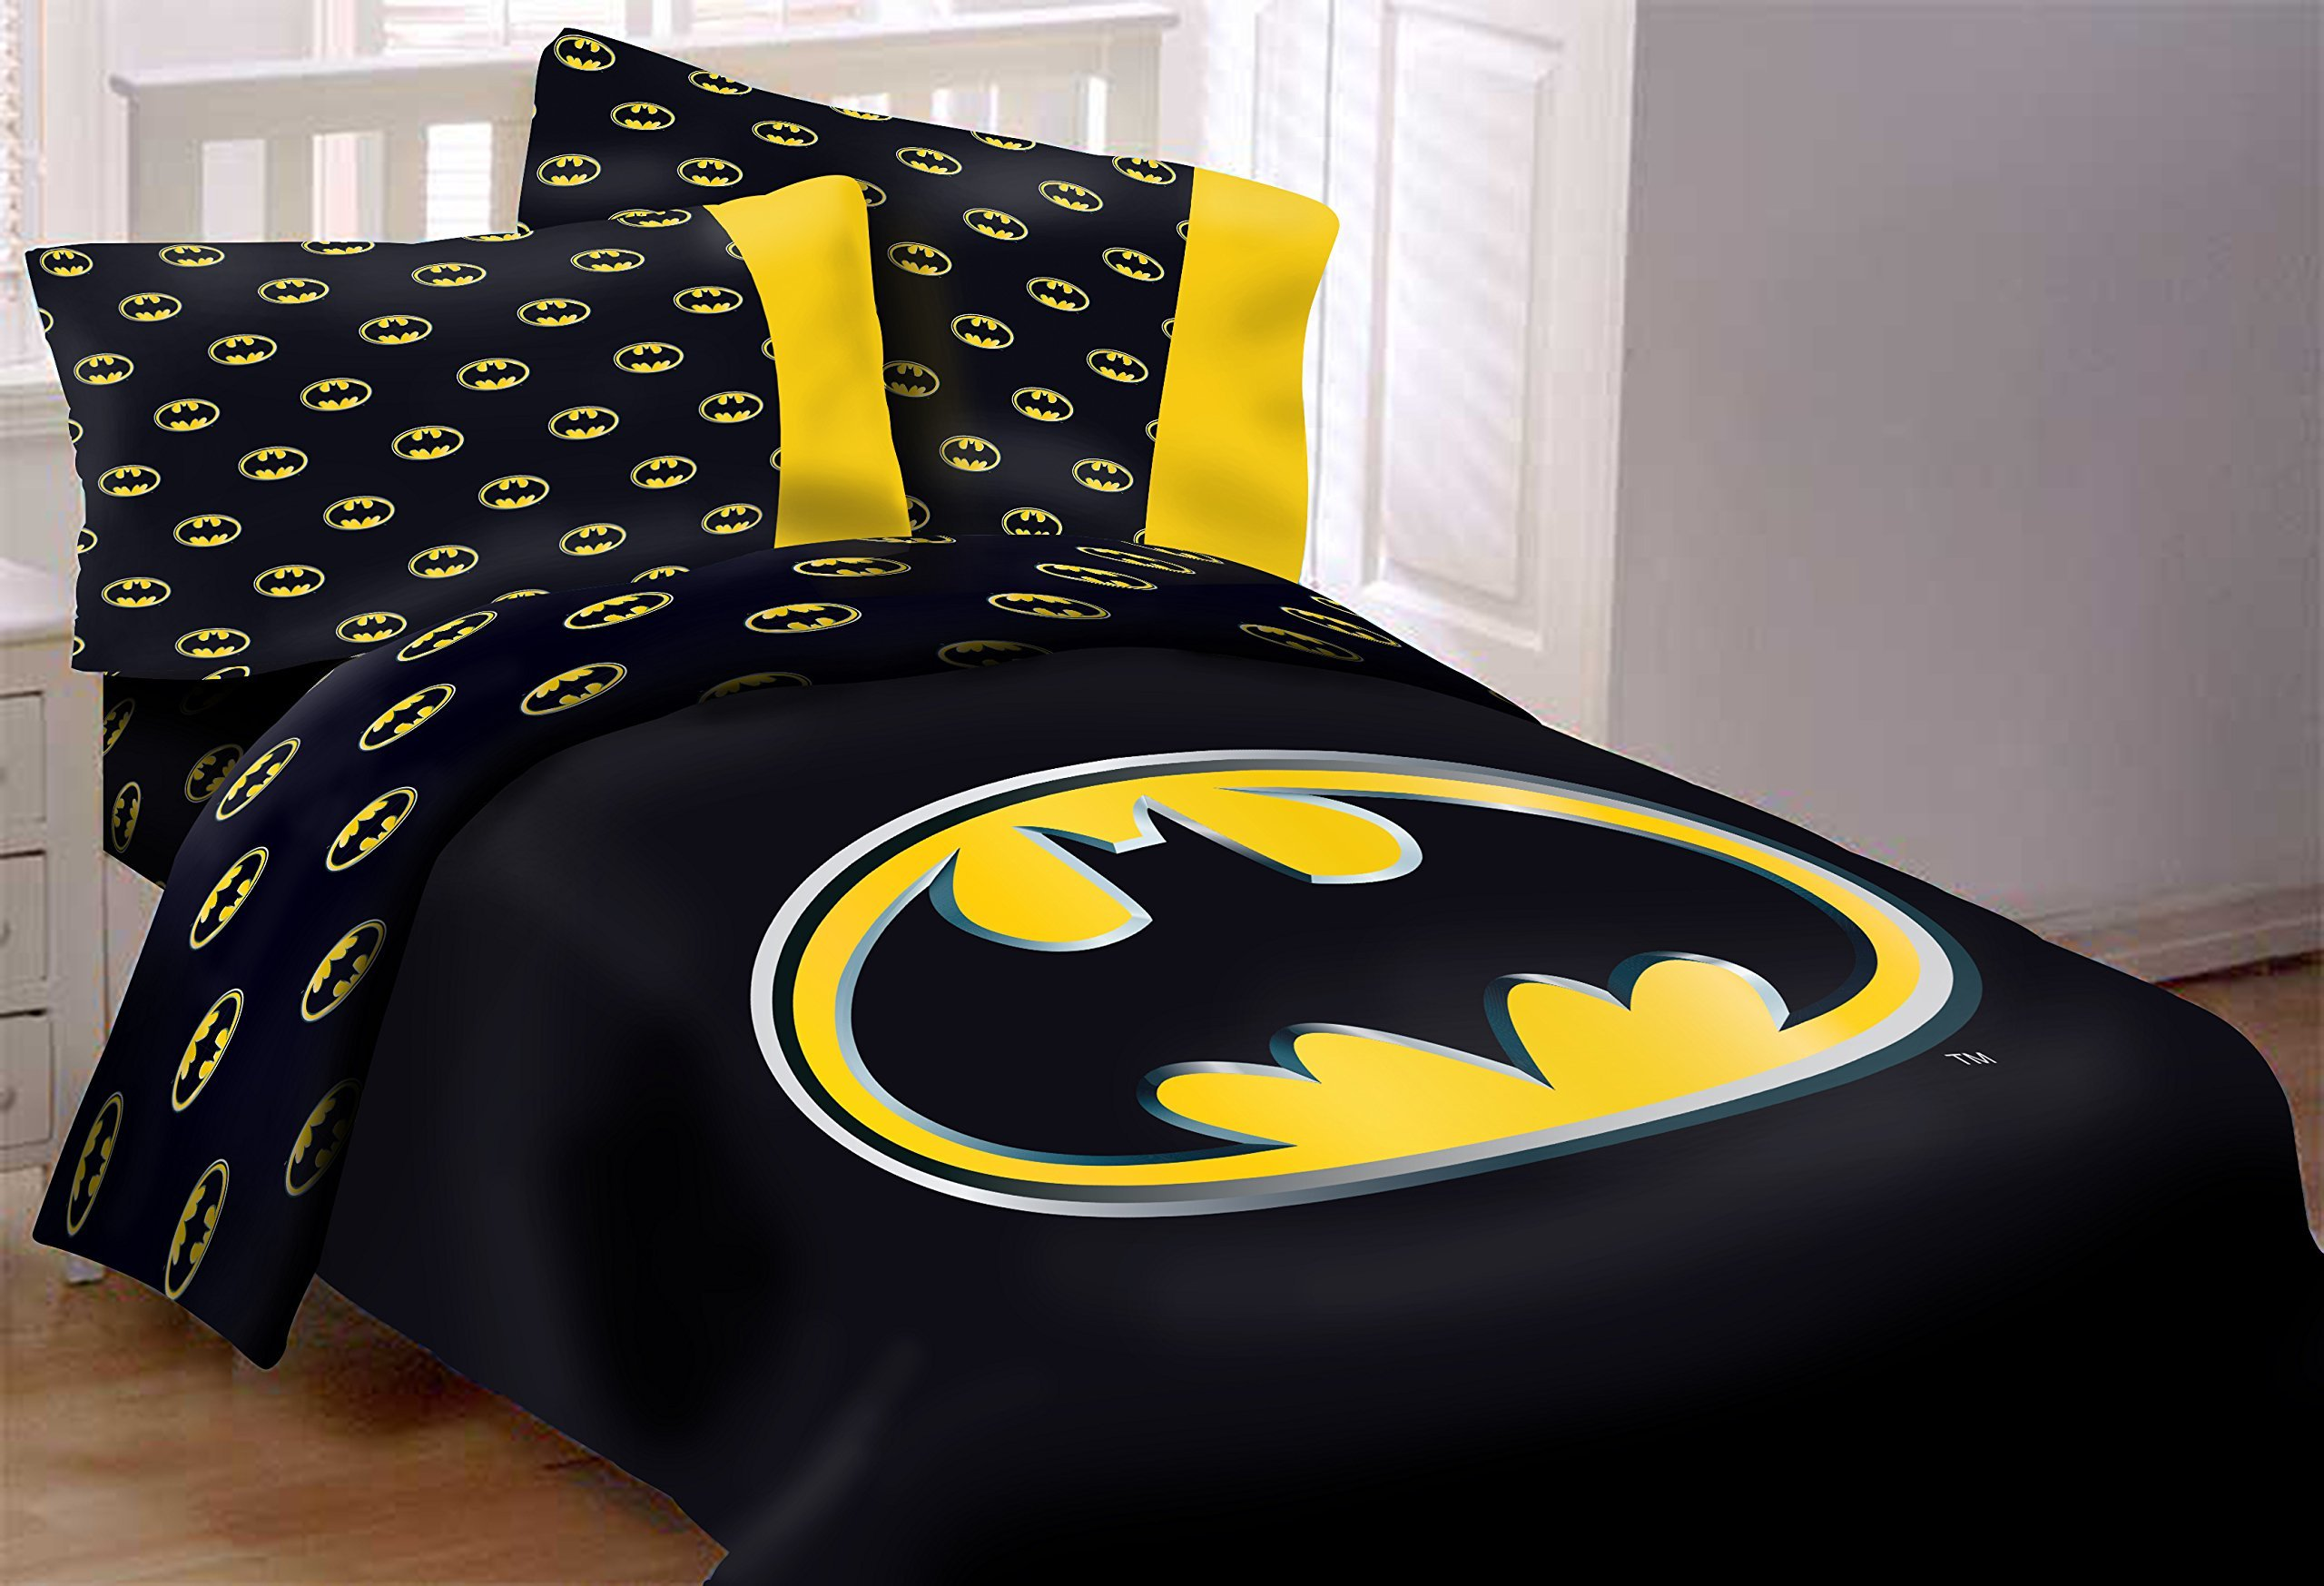 "JPI Batman Emblem Luxury 4pc Comforter Set Reversible Super Soft Twin Size 68""x86"", Black"